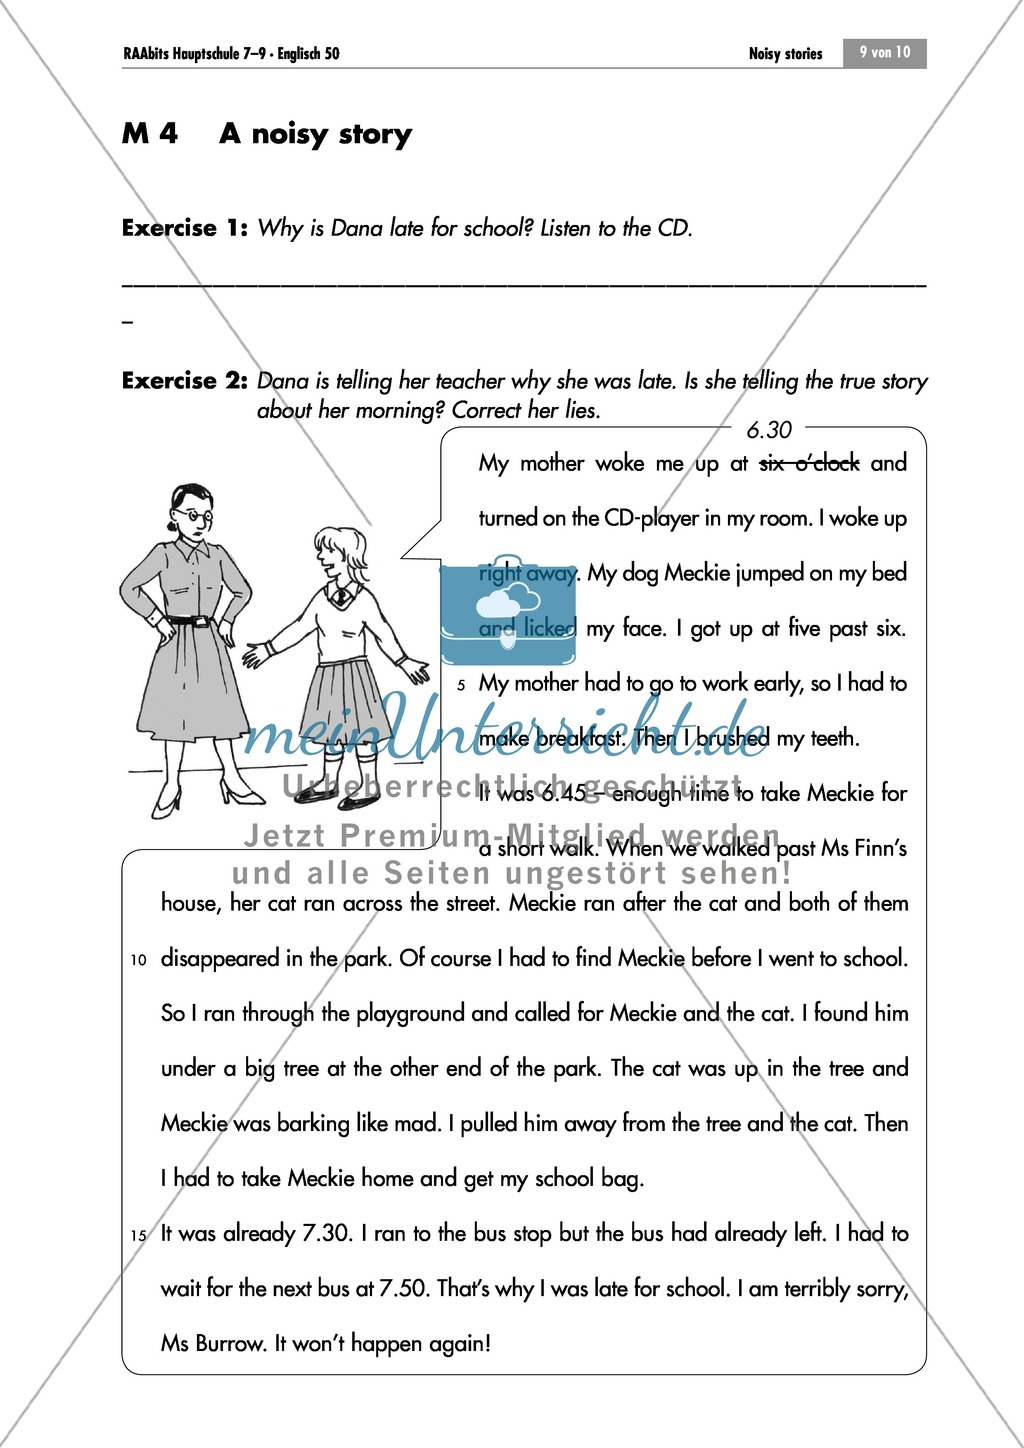 Simple Past Listening Comprehension And Grammar Exercise